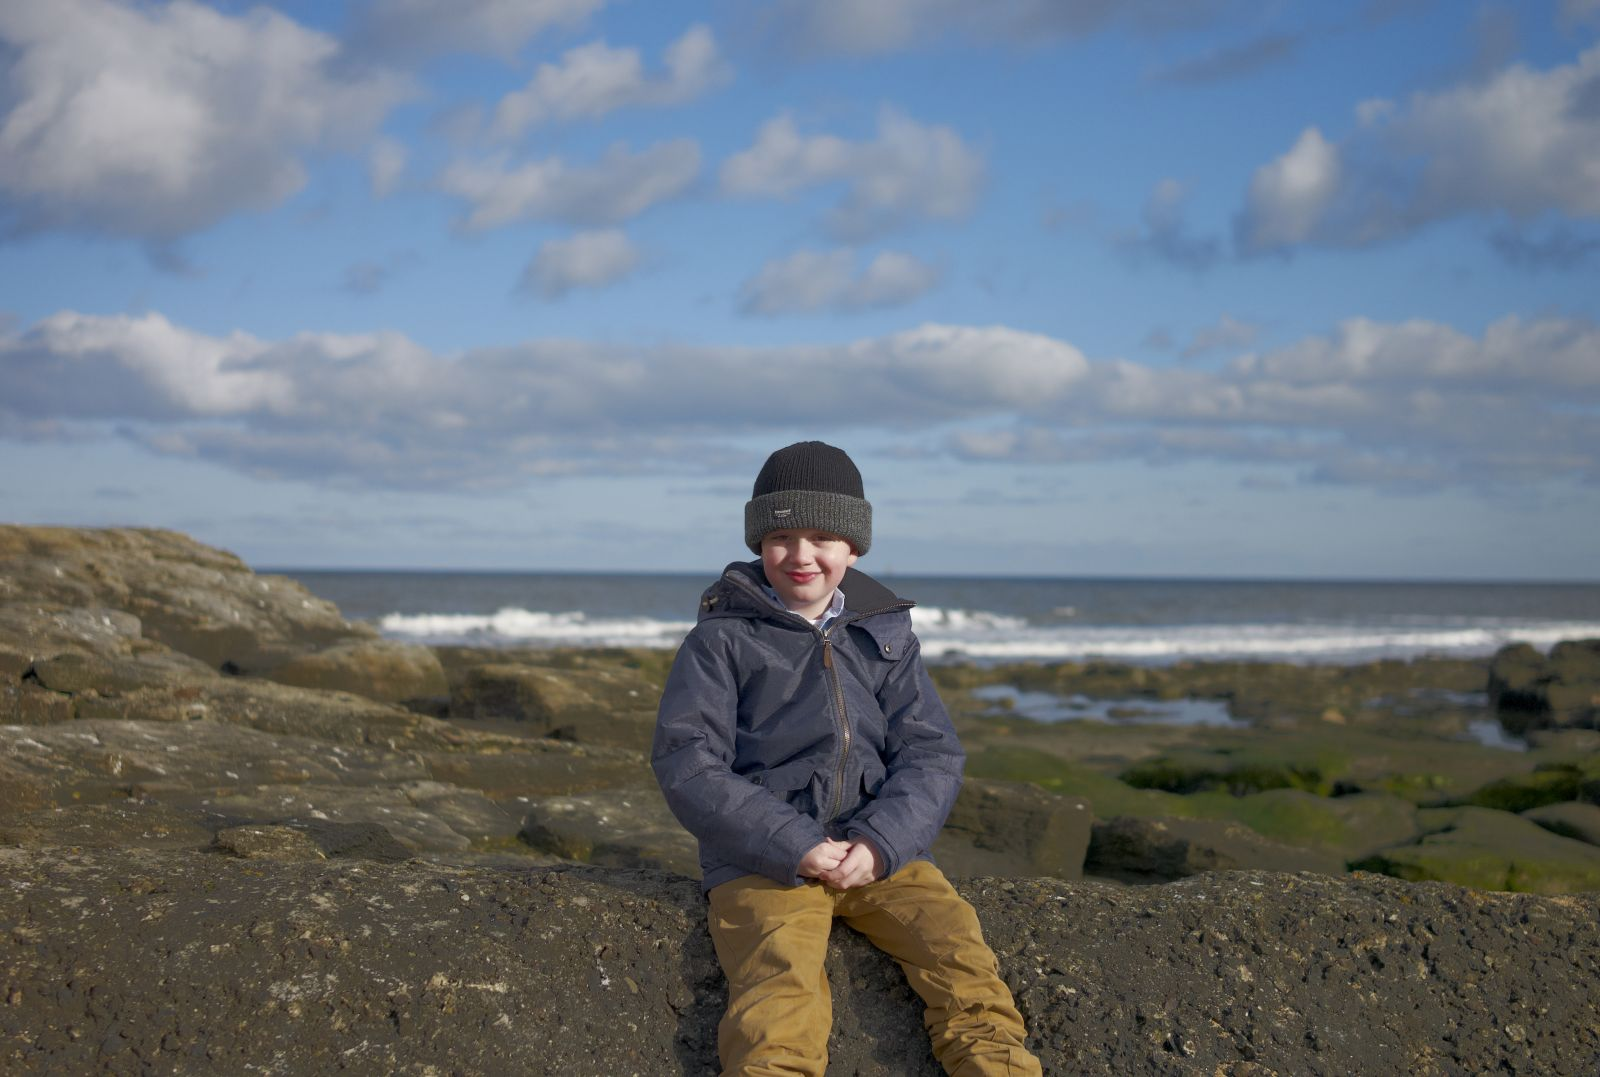 M On The rocks near St Mary's lighthouse causeway (M8   Summarit 35mm f2.5)